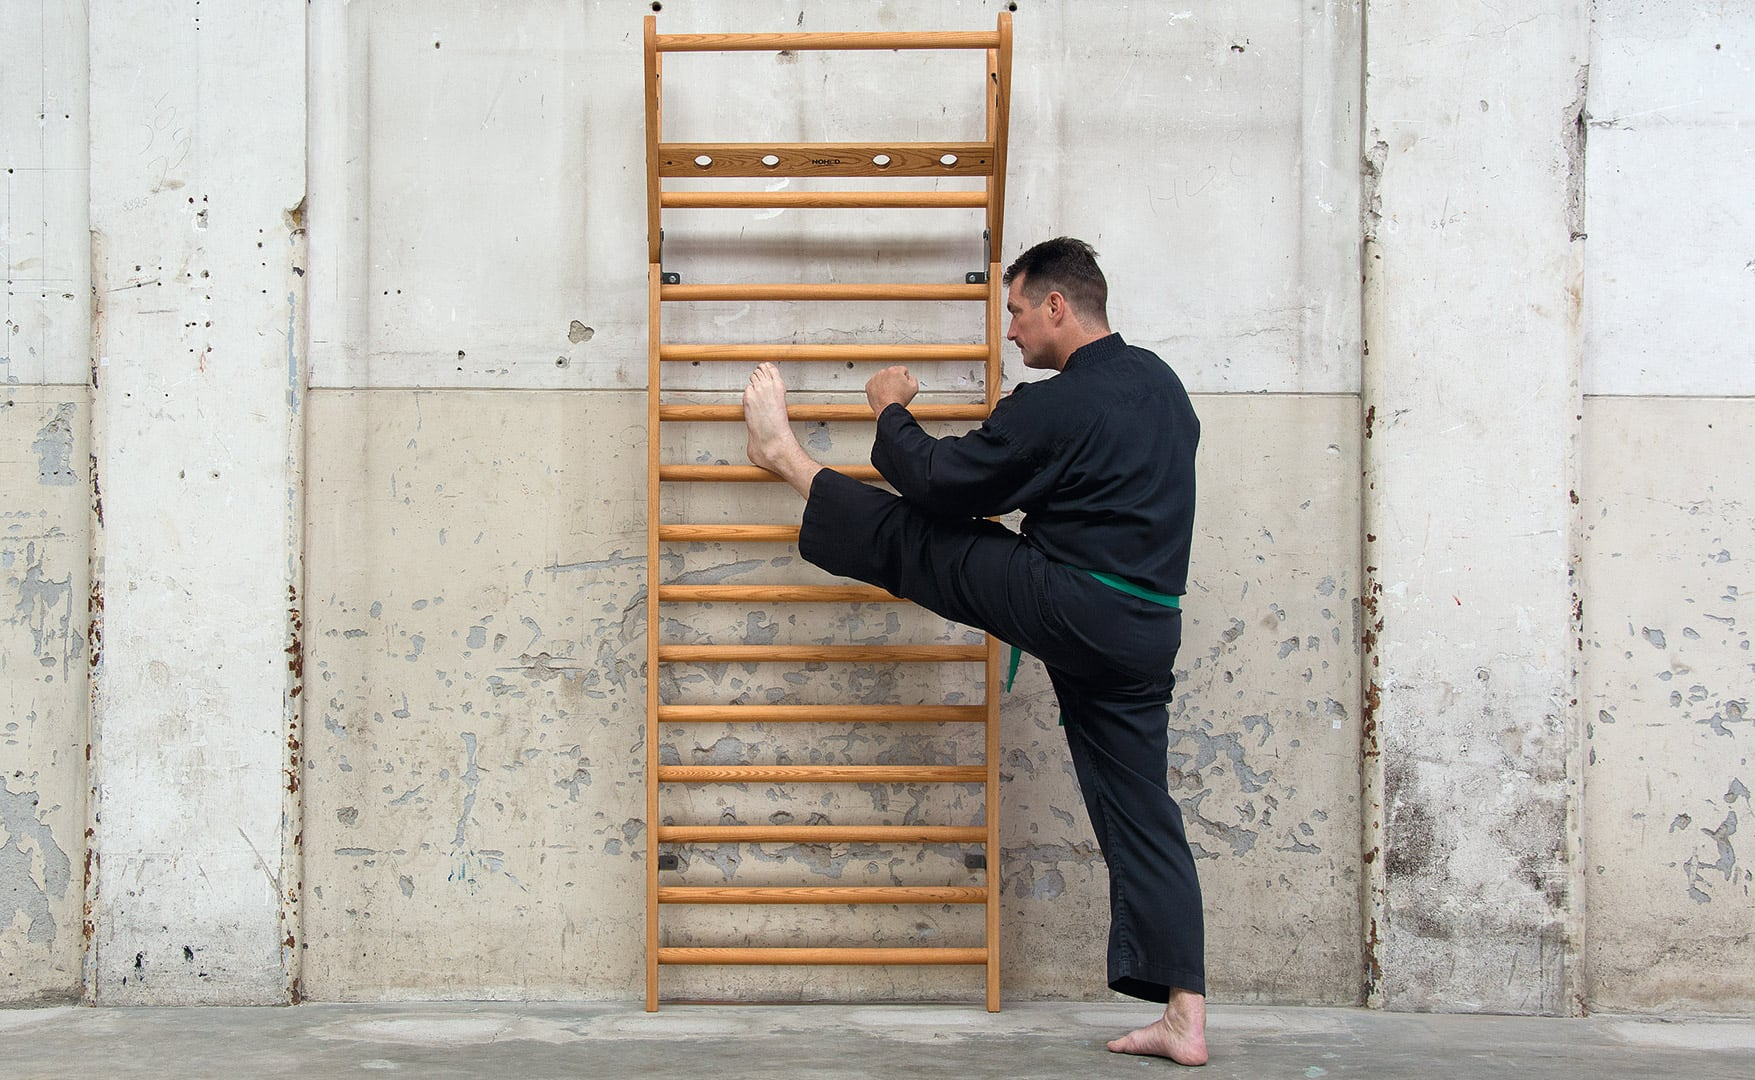 NOHrD WallBars Foldout Sports Equipment provides training and stretching options